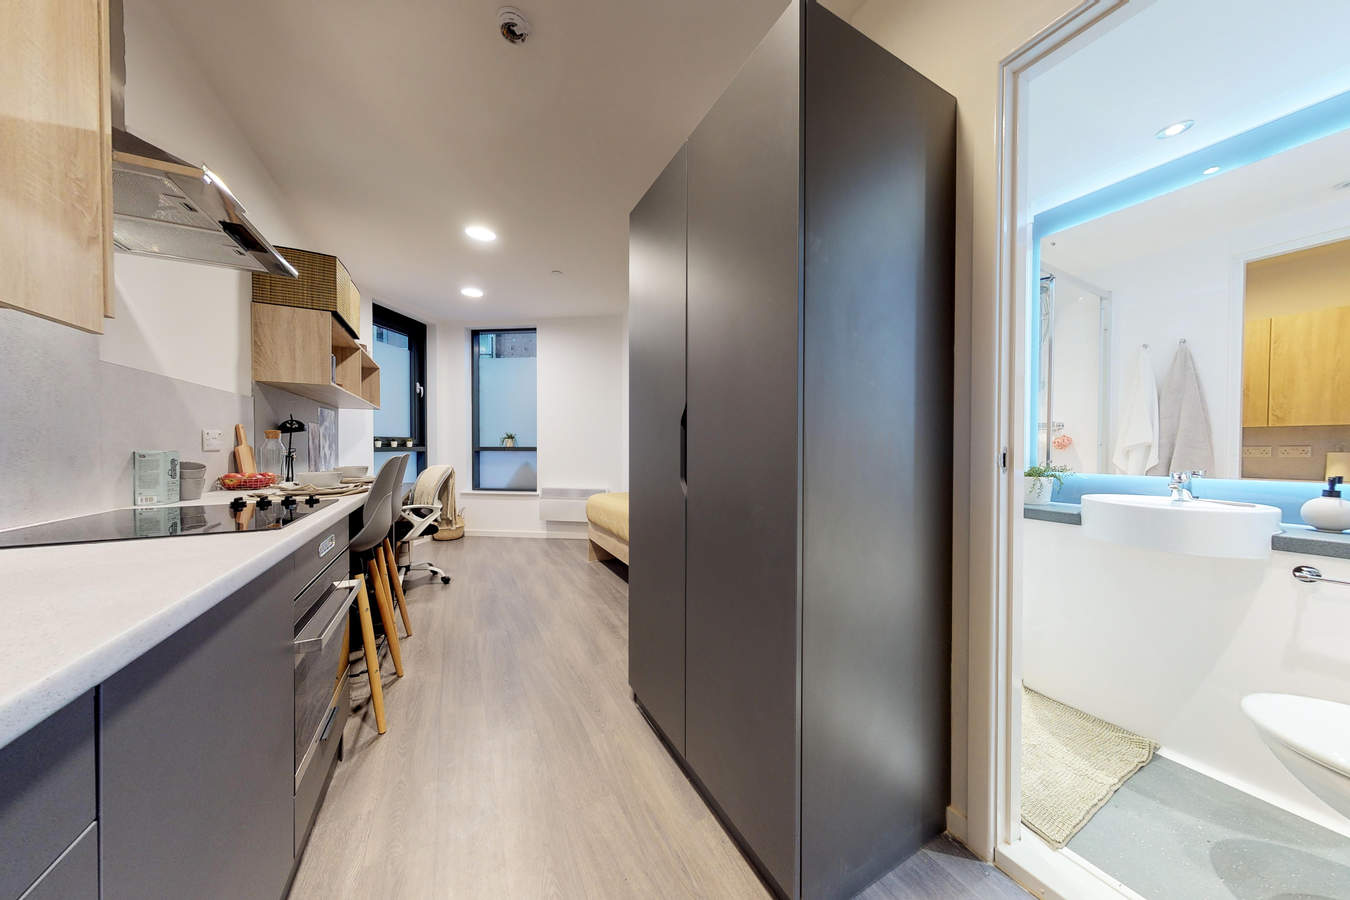 Studio-apartment-12182019_165859